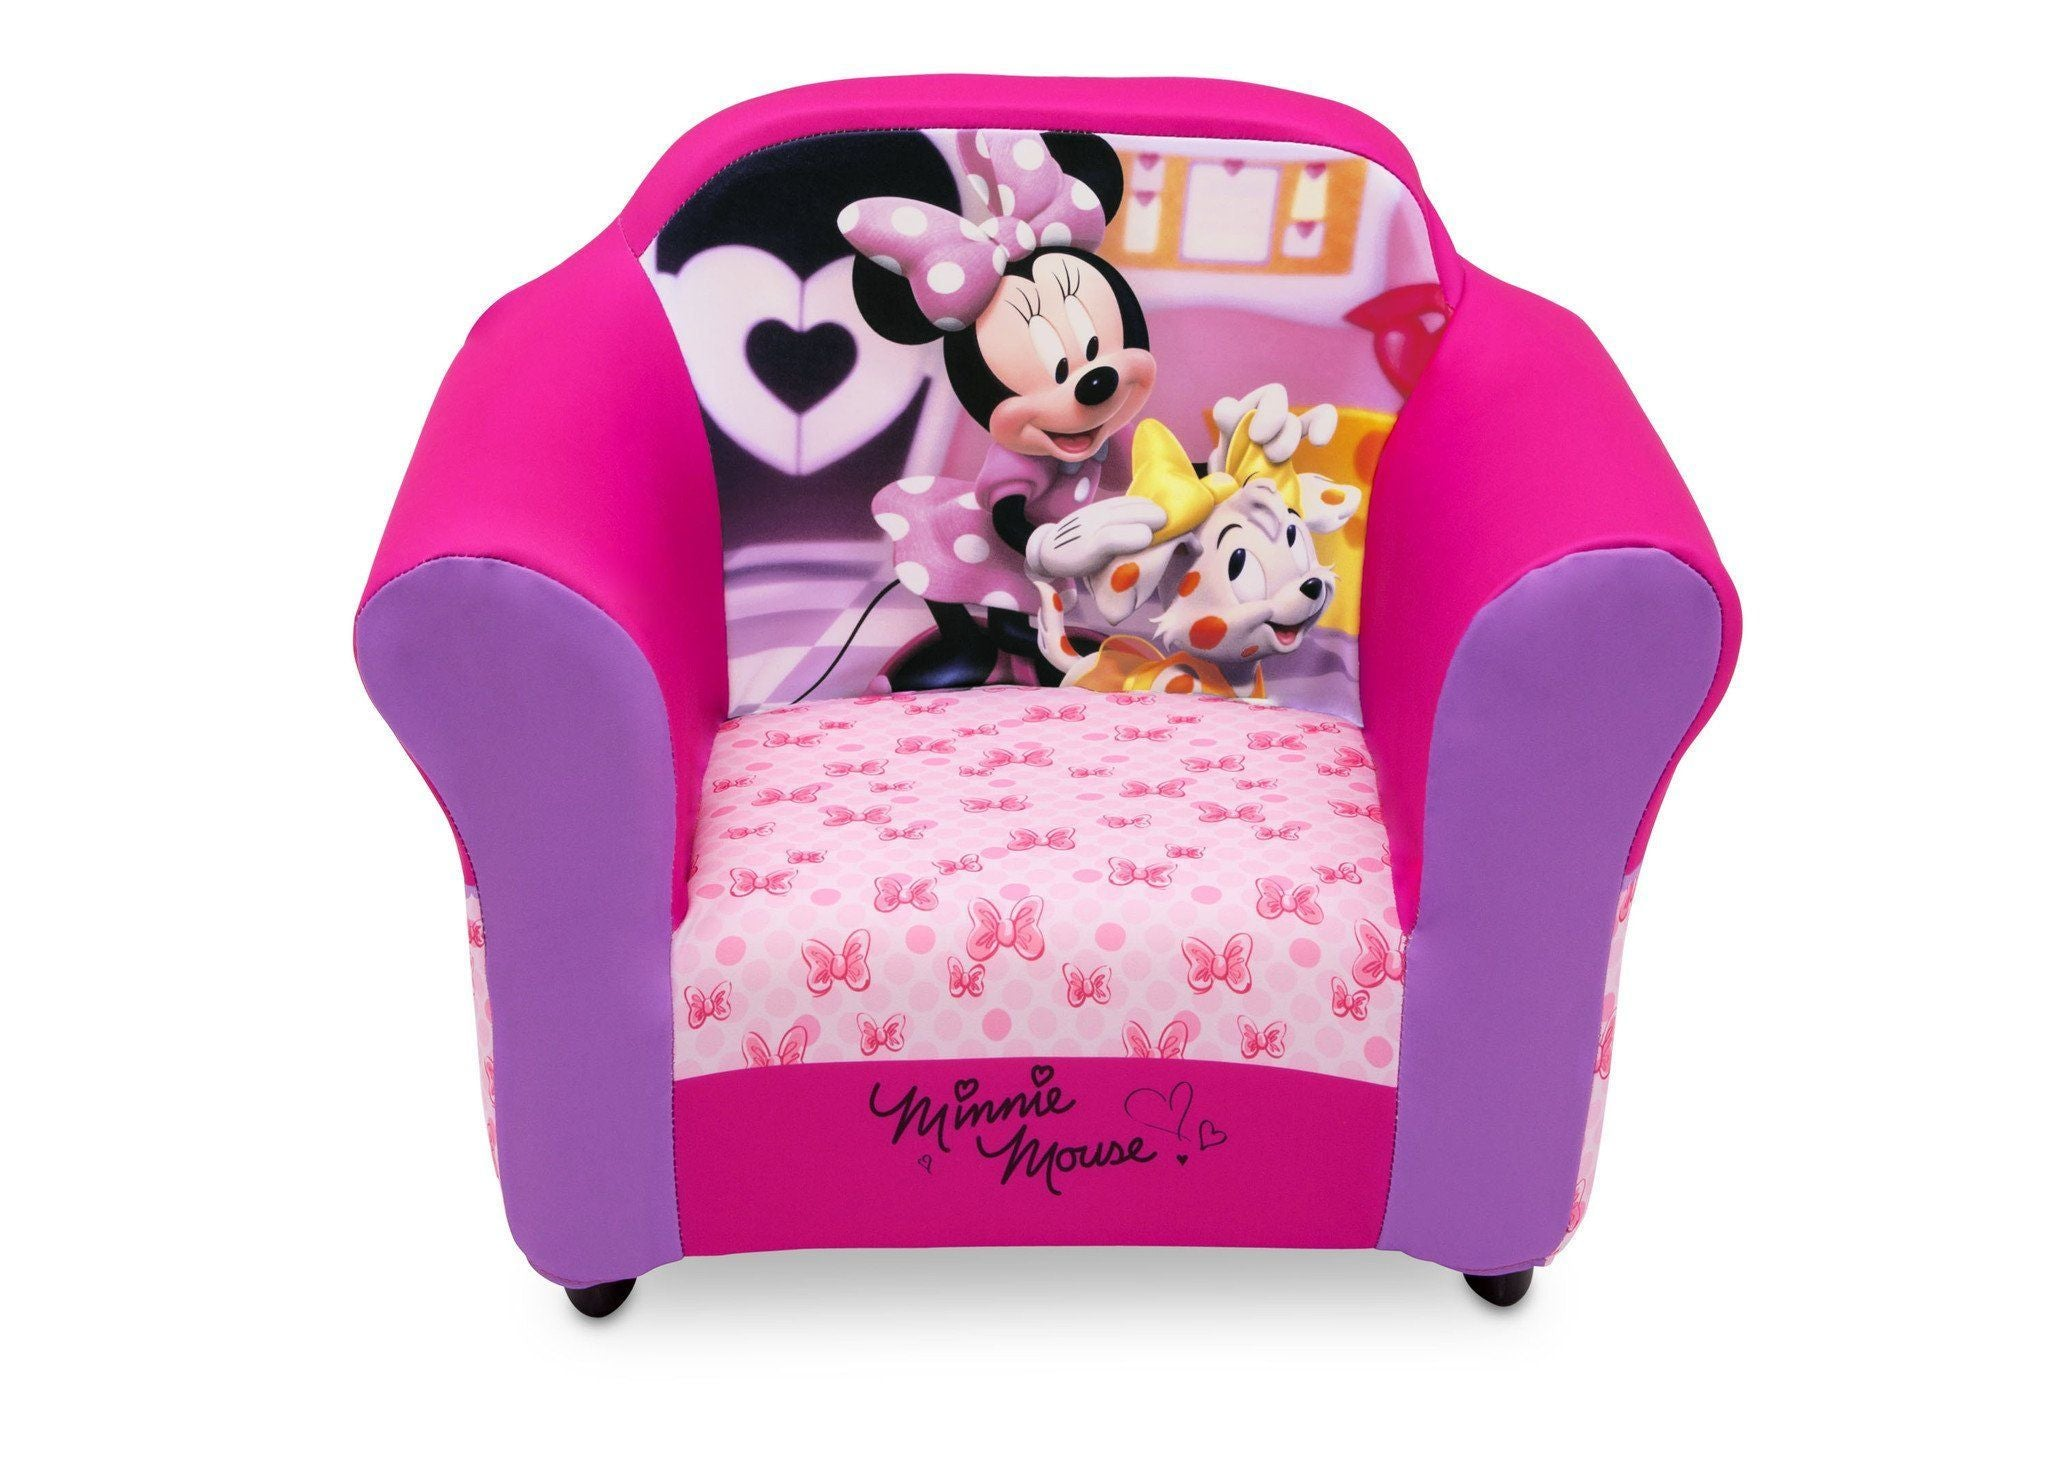 Minni Mouse Chair Best Image and Description About Mouse